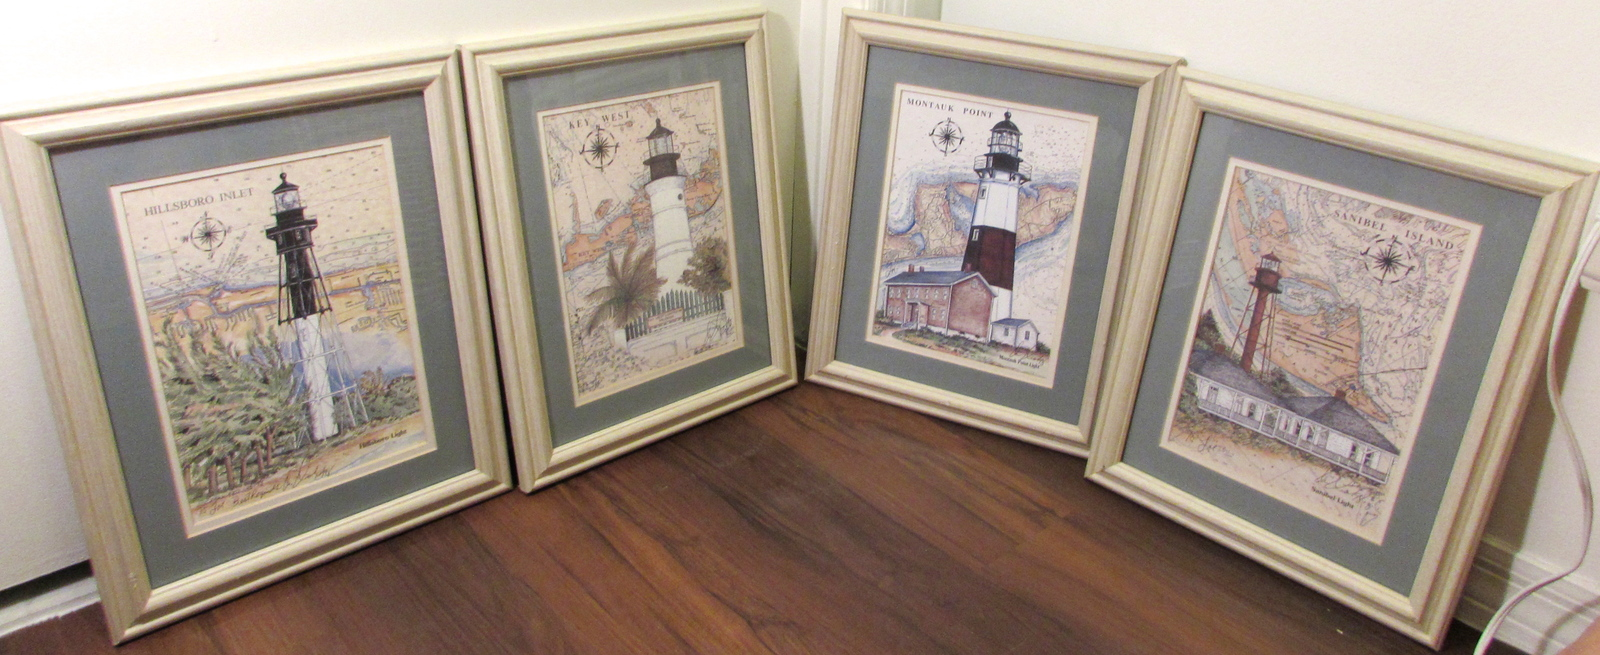 The Collectors Great American Lighthouse Series Featuring Donna Elia's Set of 4